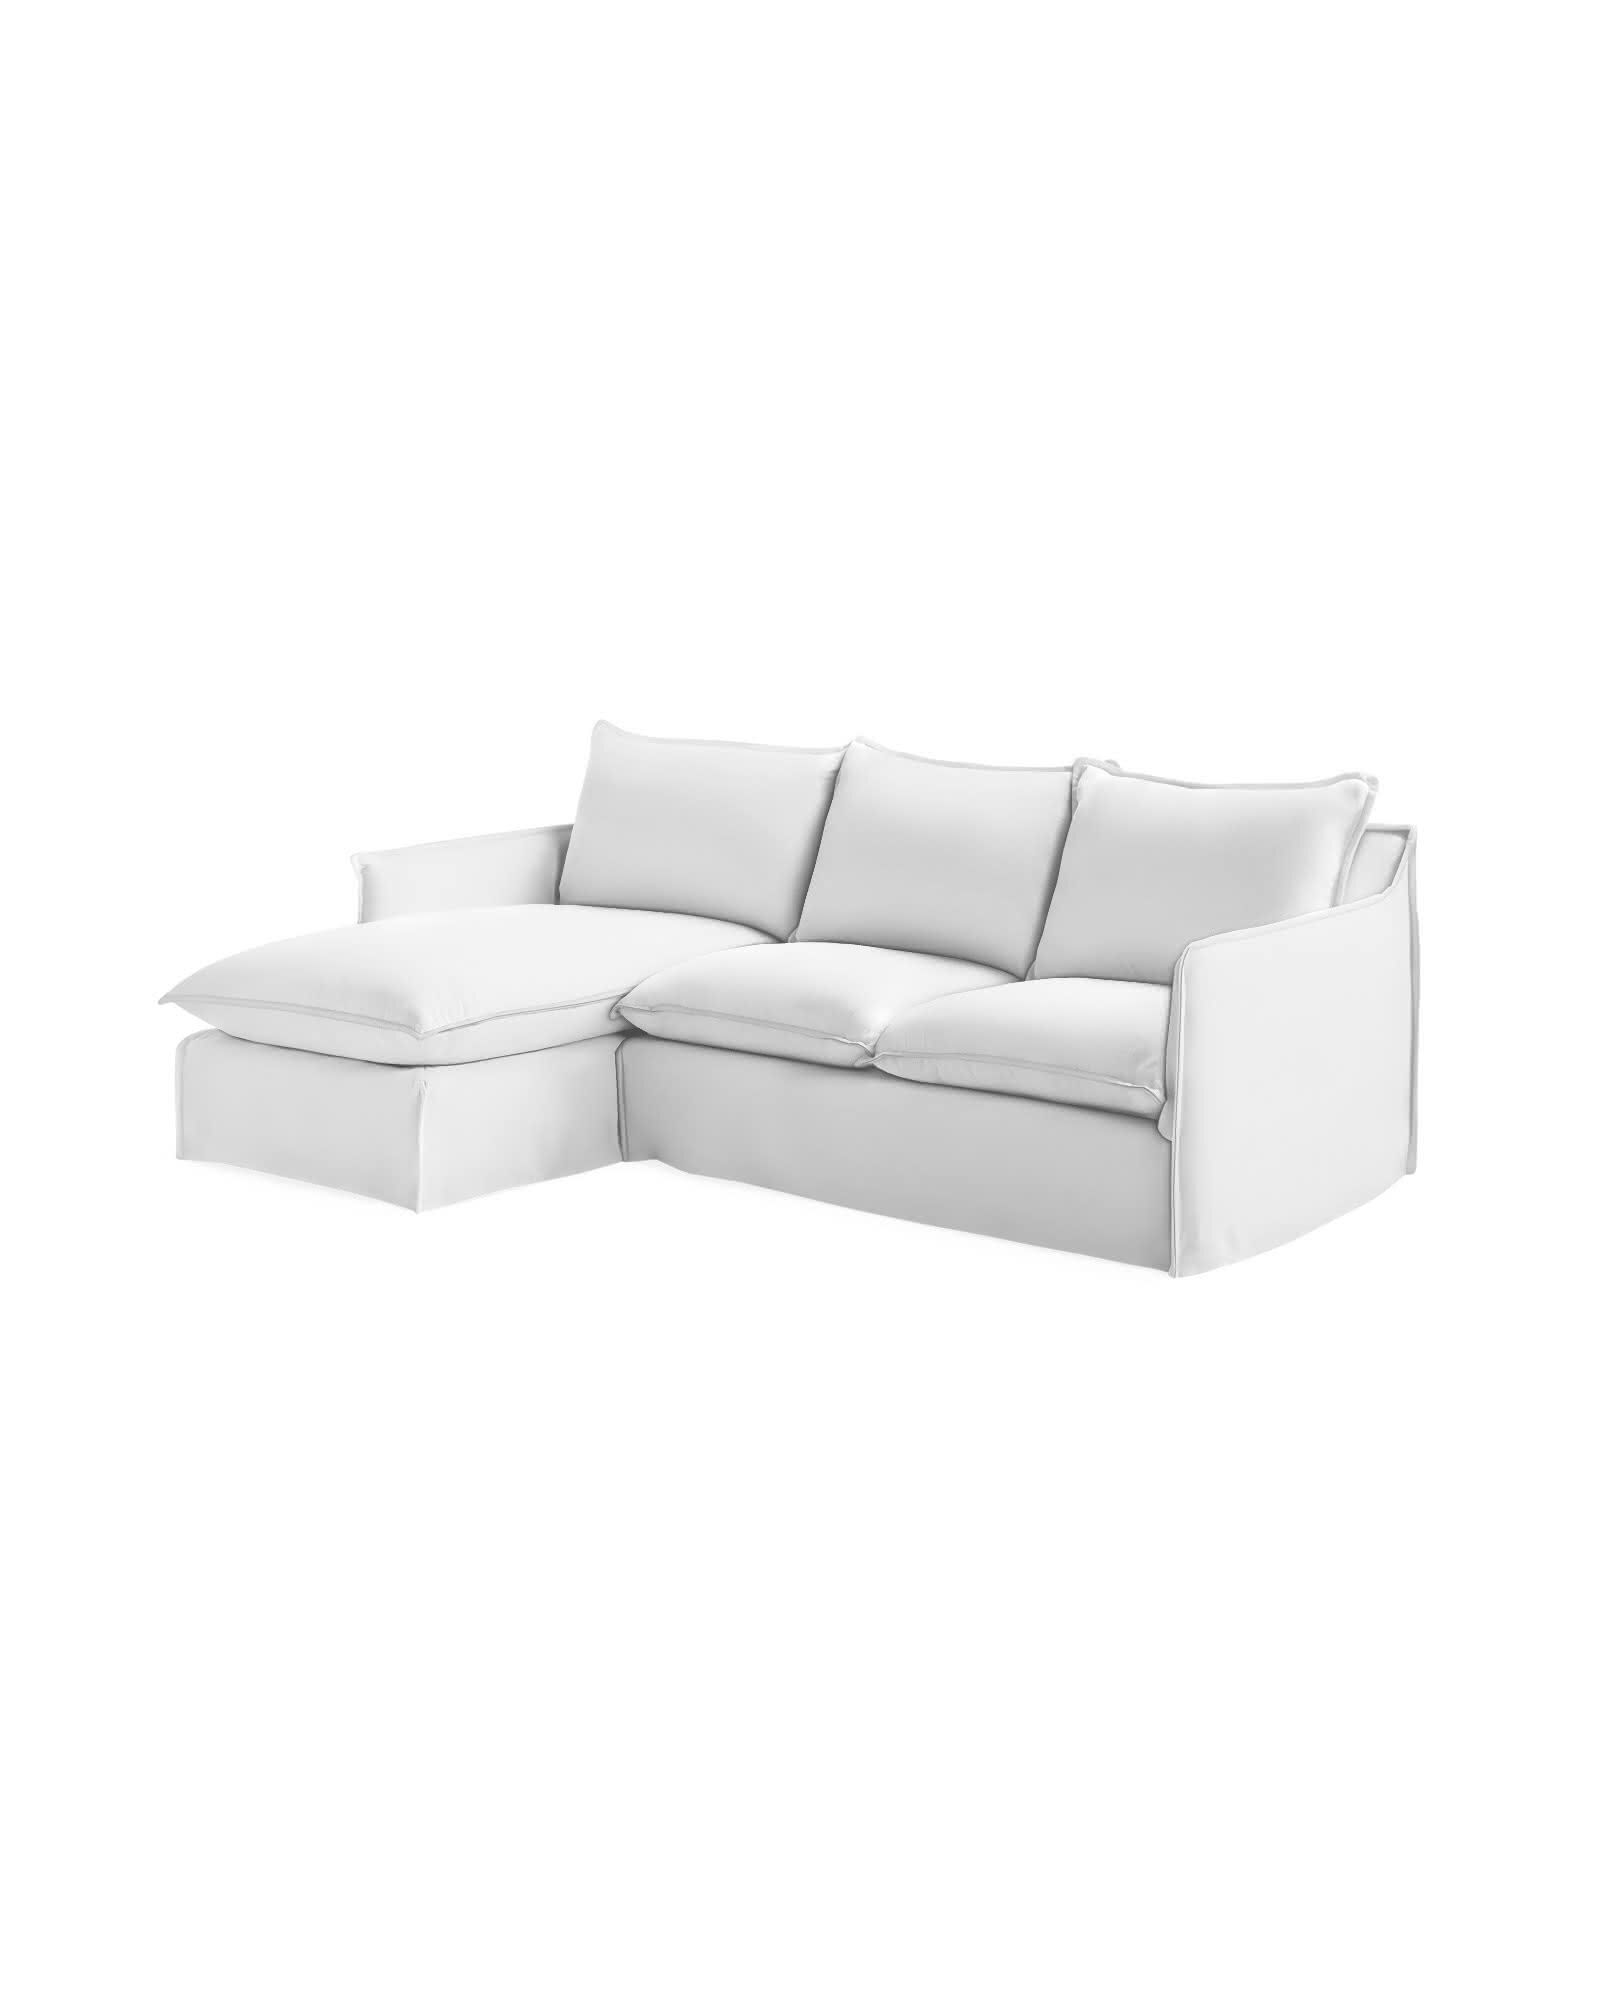 Sundial Outdoor Chaise Sectional - Left-Facing - Perennials® White Basketweave,